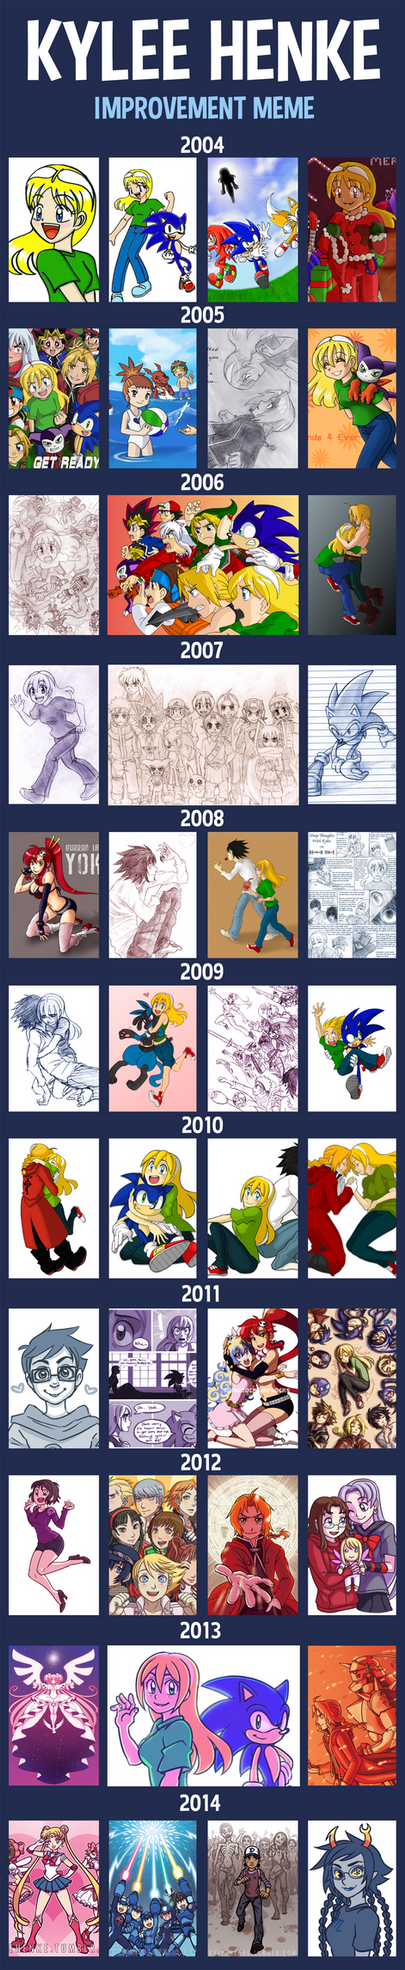 Improvement Meme 2004-2014 by SonicRocksMySocks